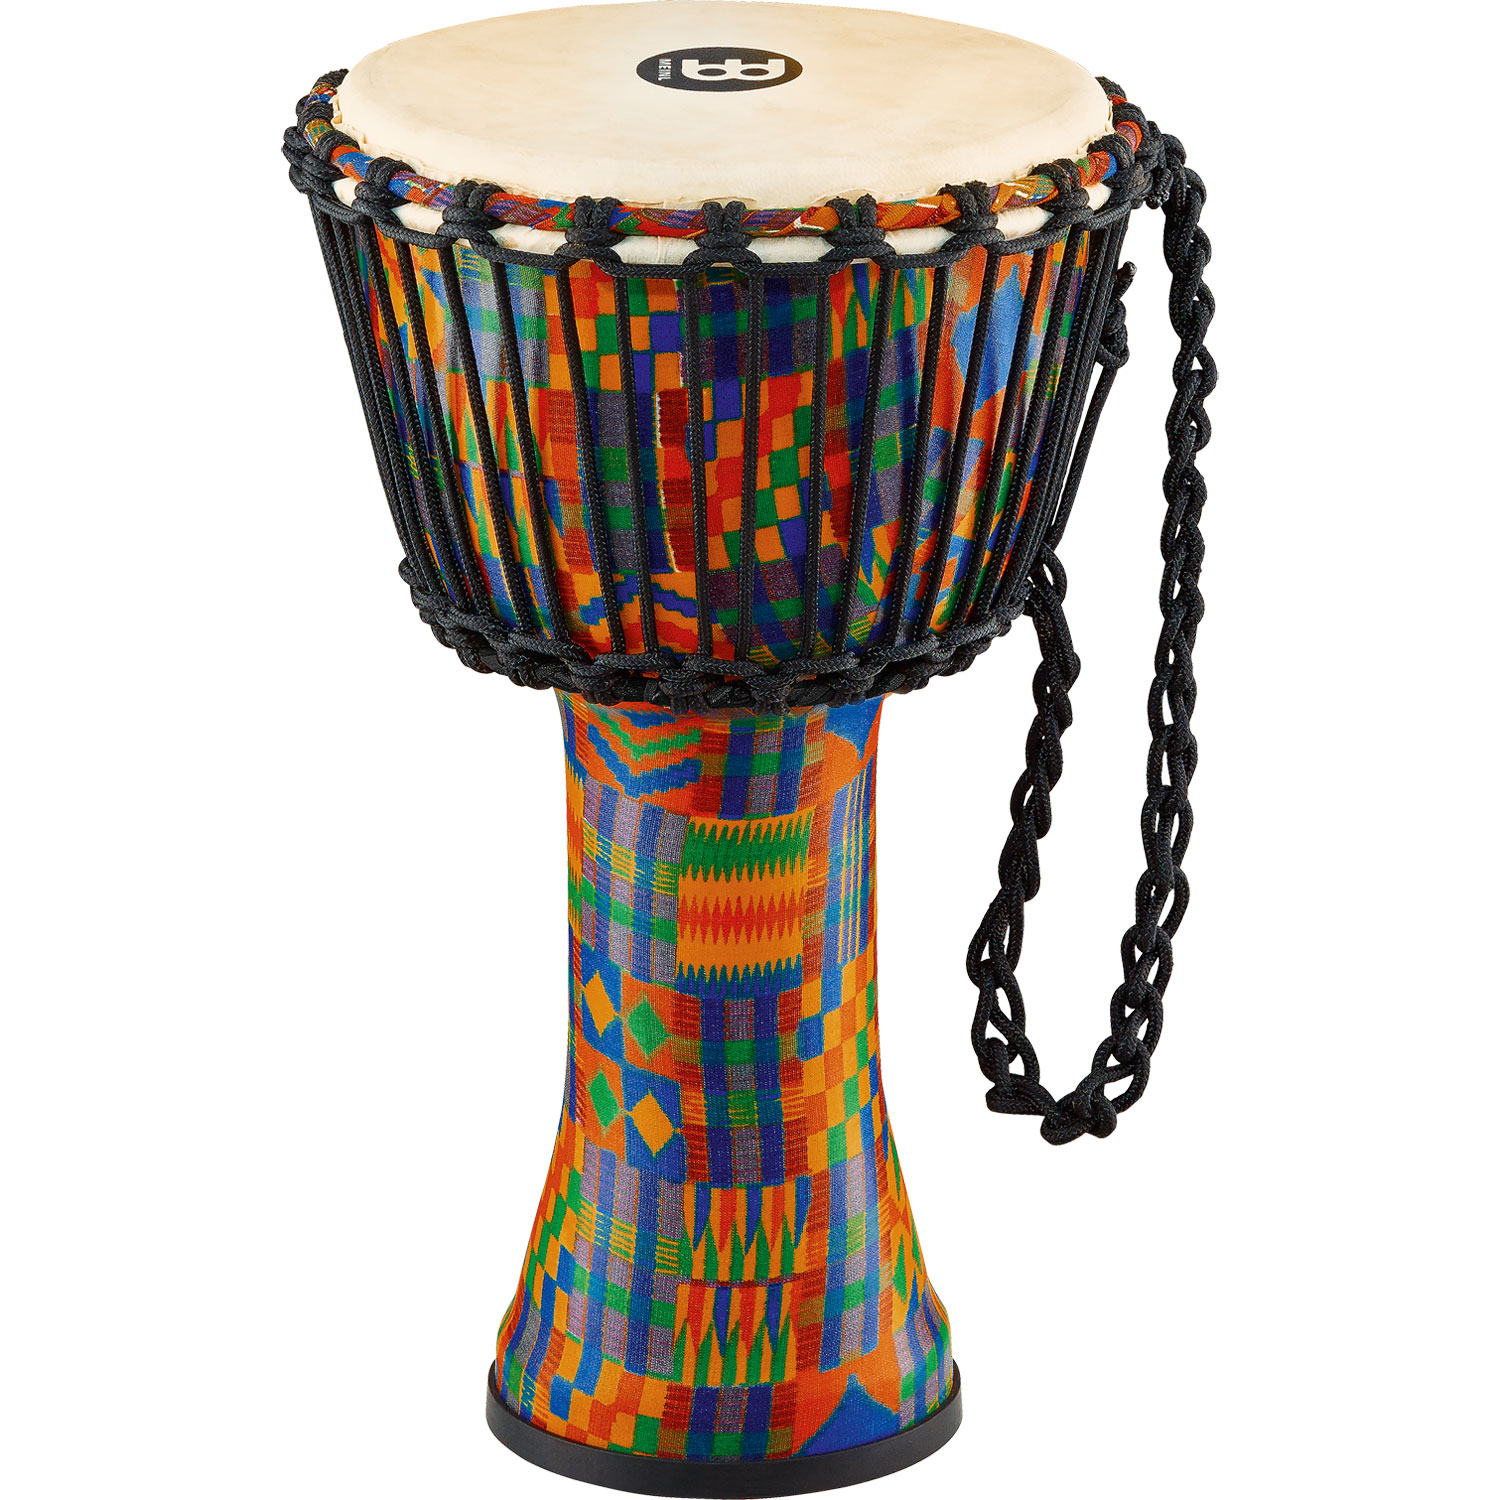 "Meinl 10"" Rope-Tuned Travel Djembe in Kenyan Quilt with Natural Head"